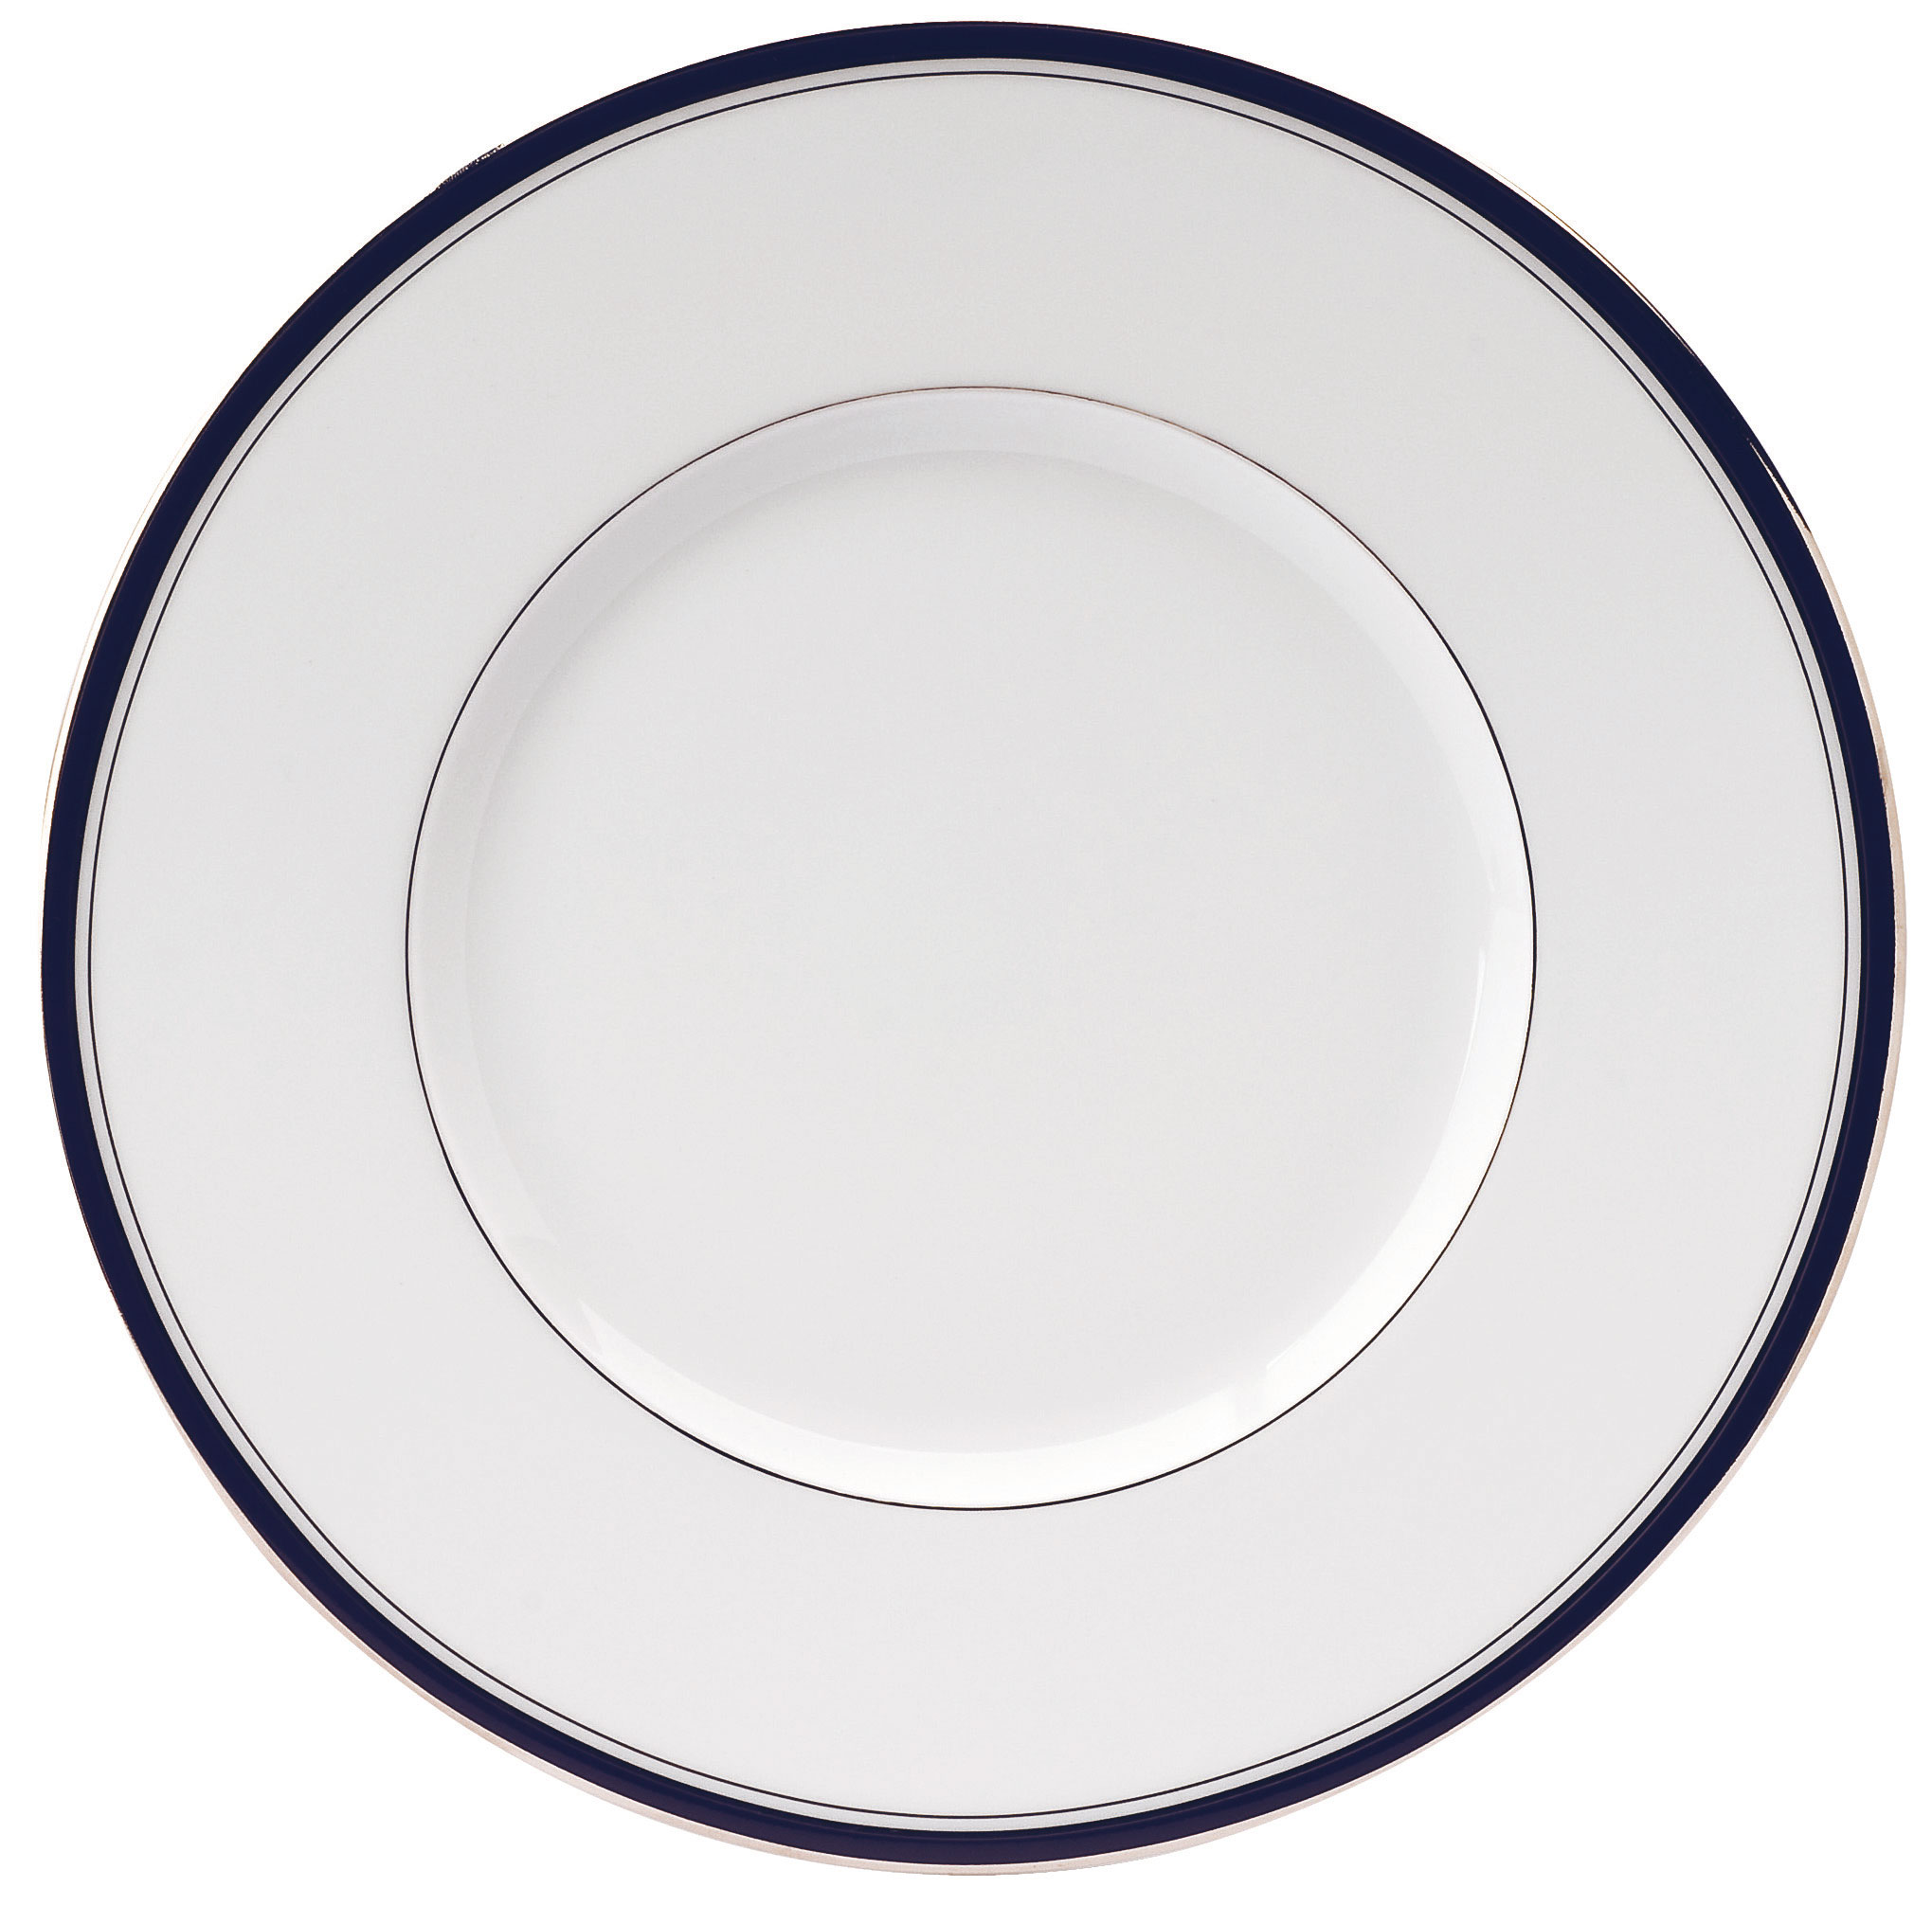 excellence dinner plate navy blue at the perfect present company